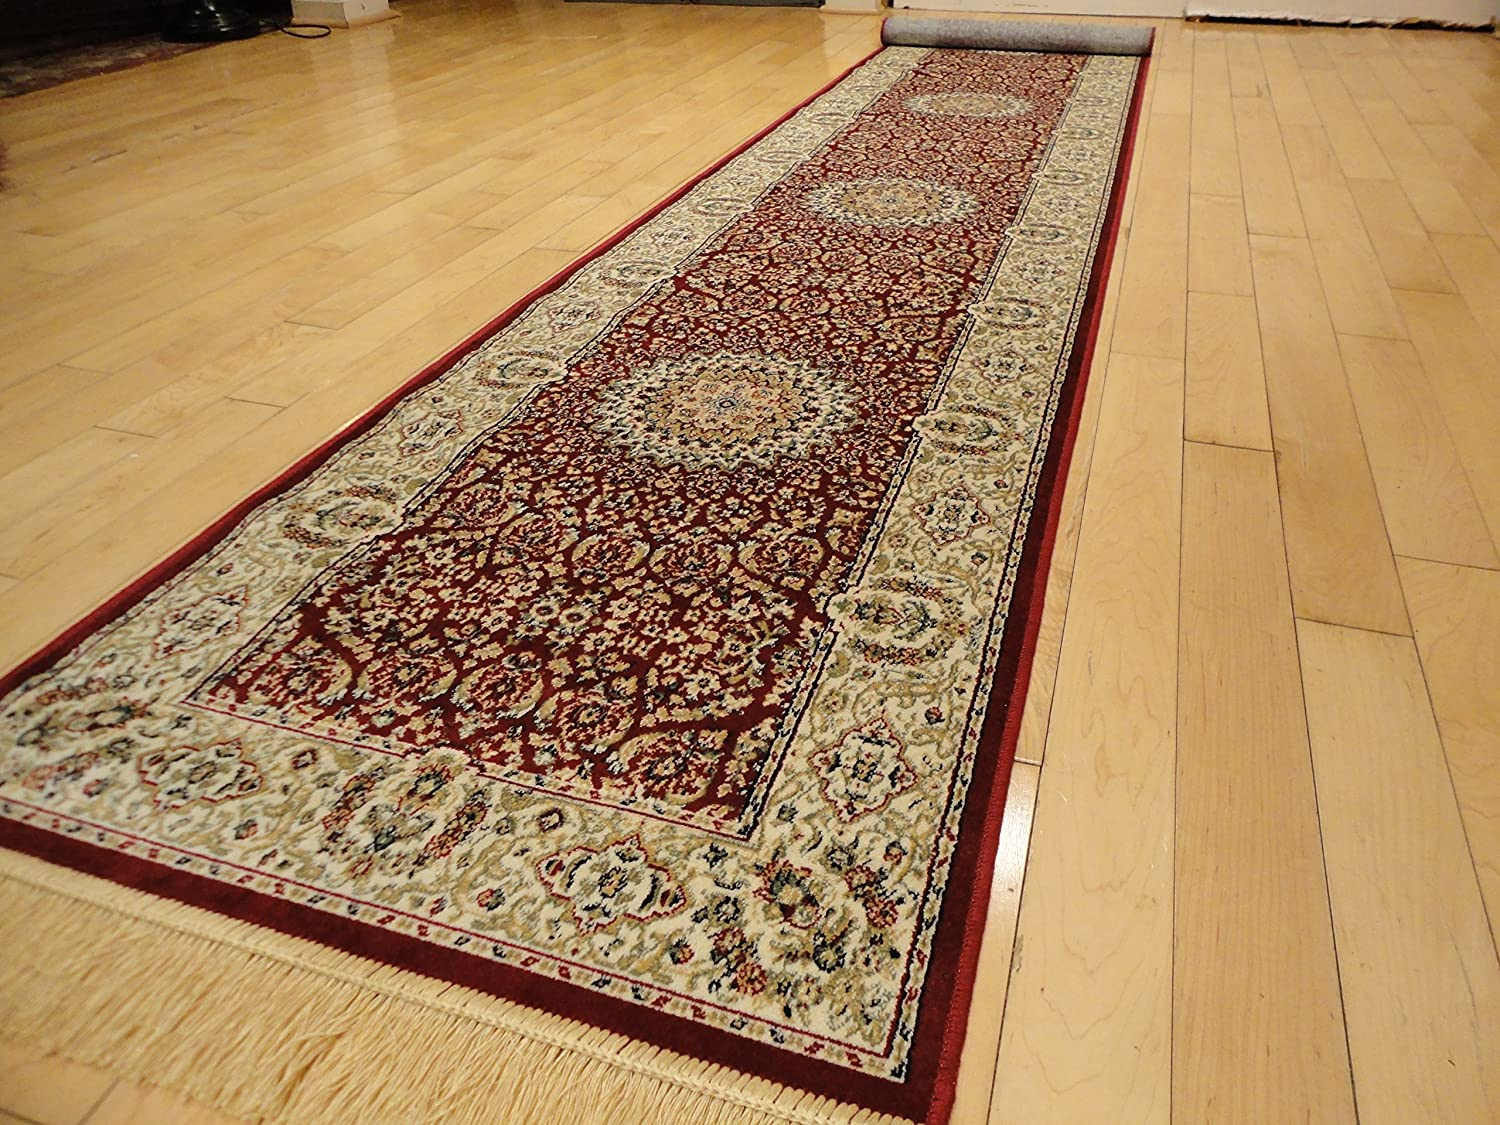 Silk Rugs Stunning Persian Design Runner 2x8 Red Runners Foyer Rugs 2x7 Runners Rug Hallway (Red, 2